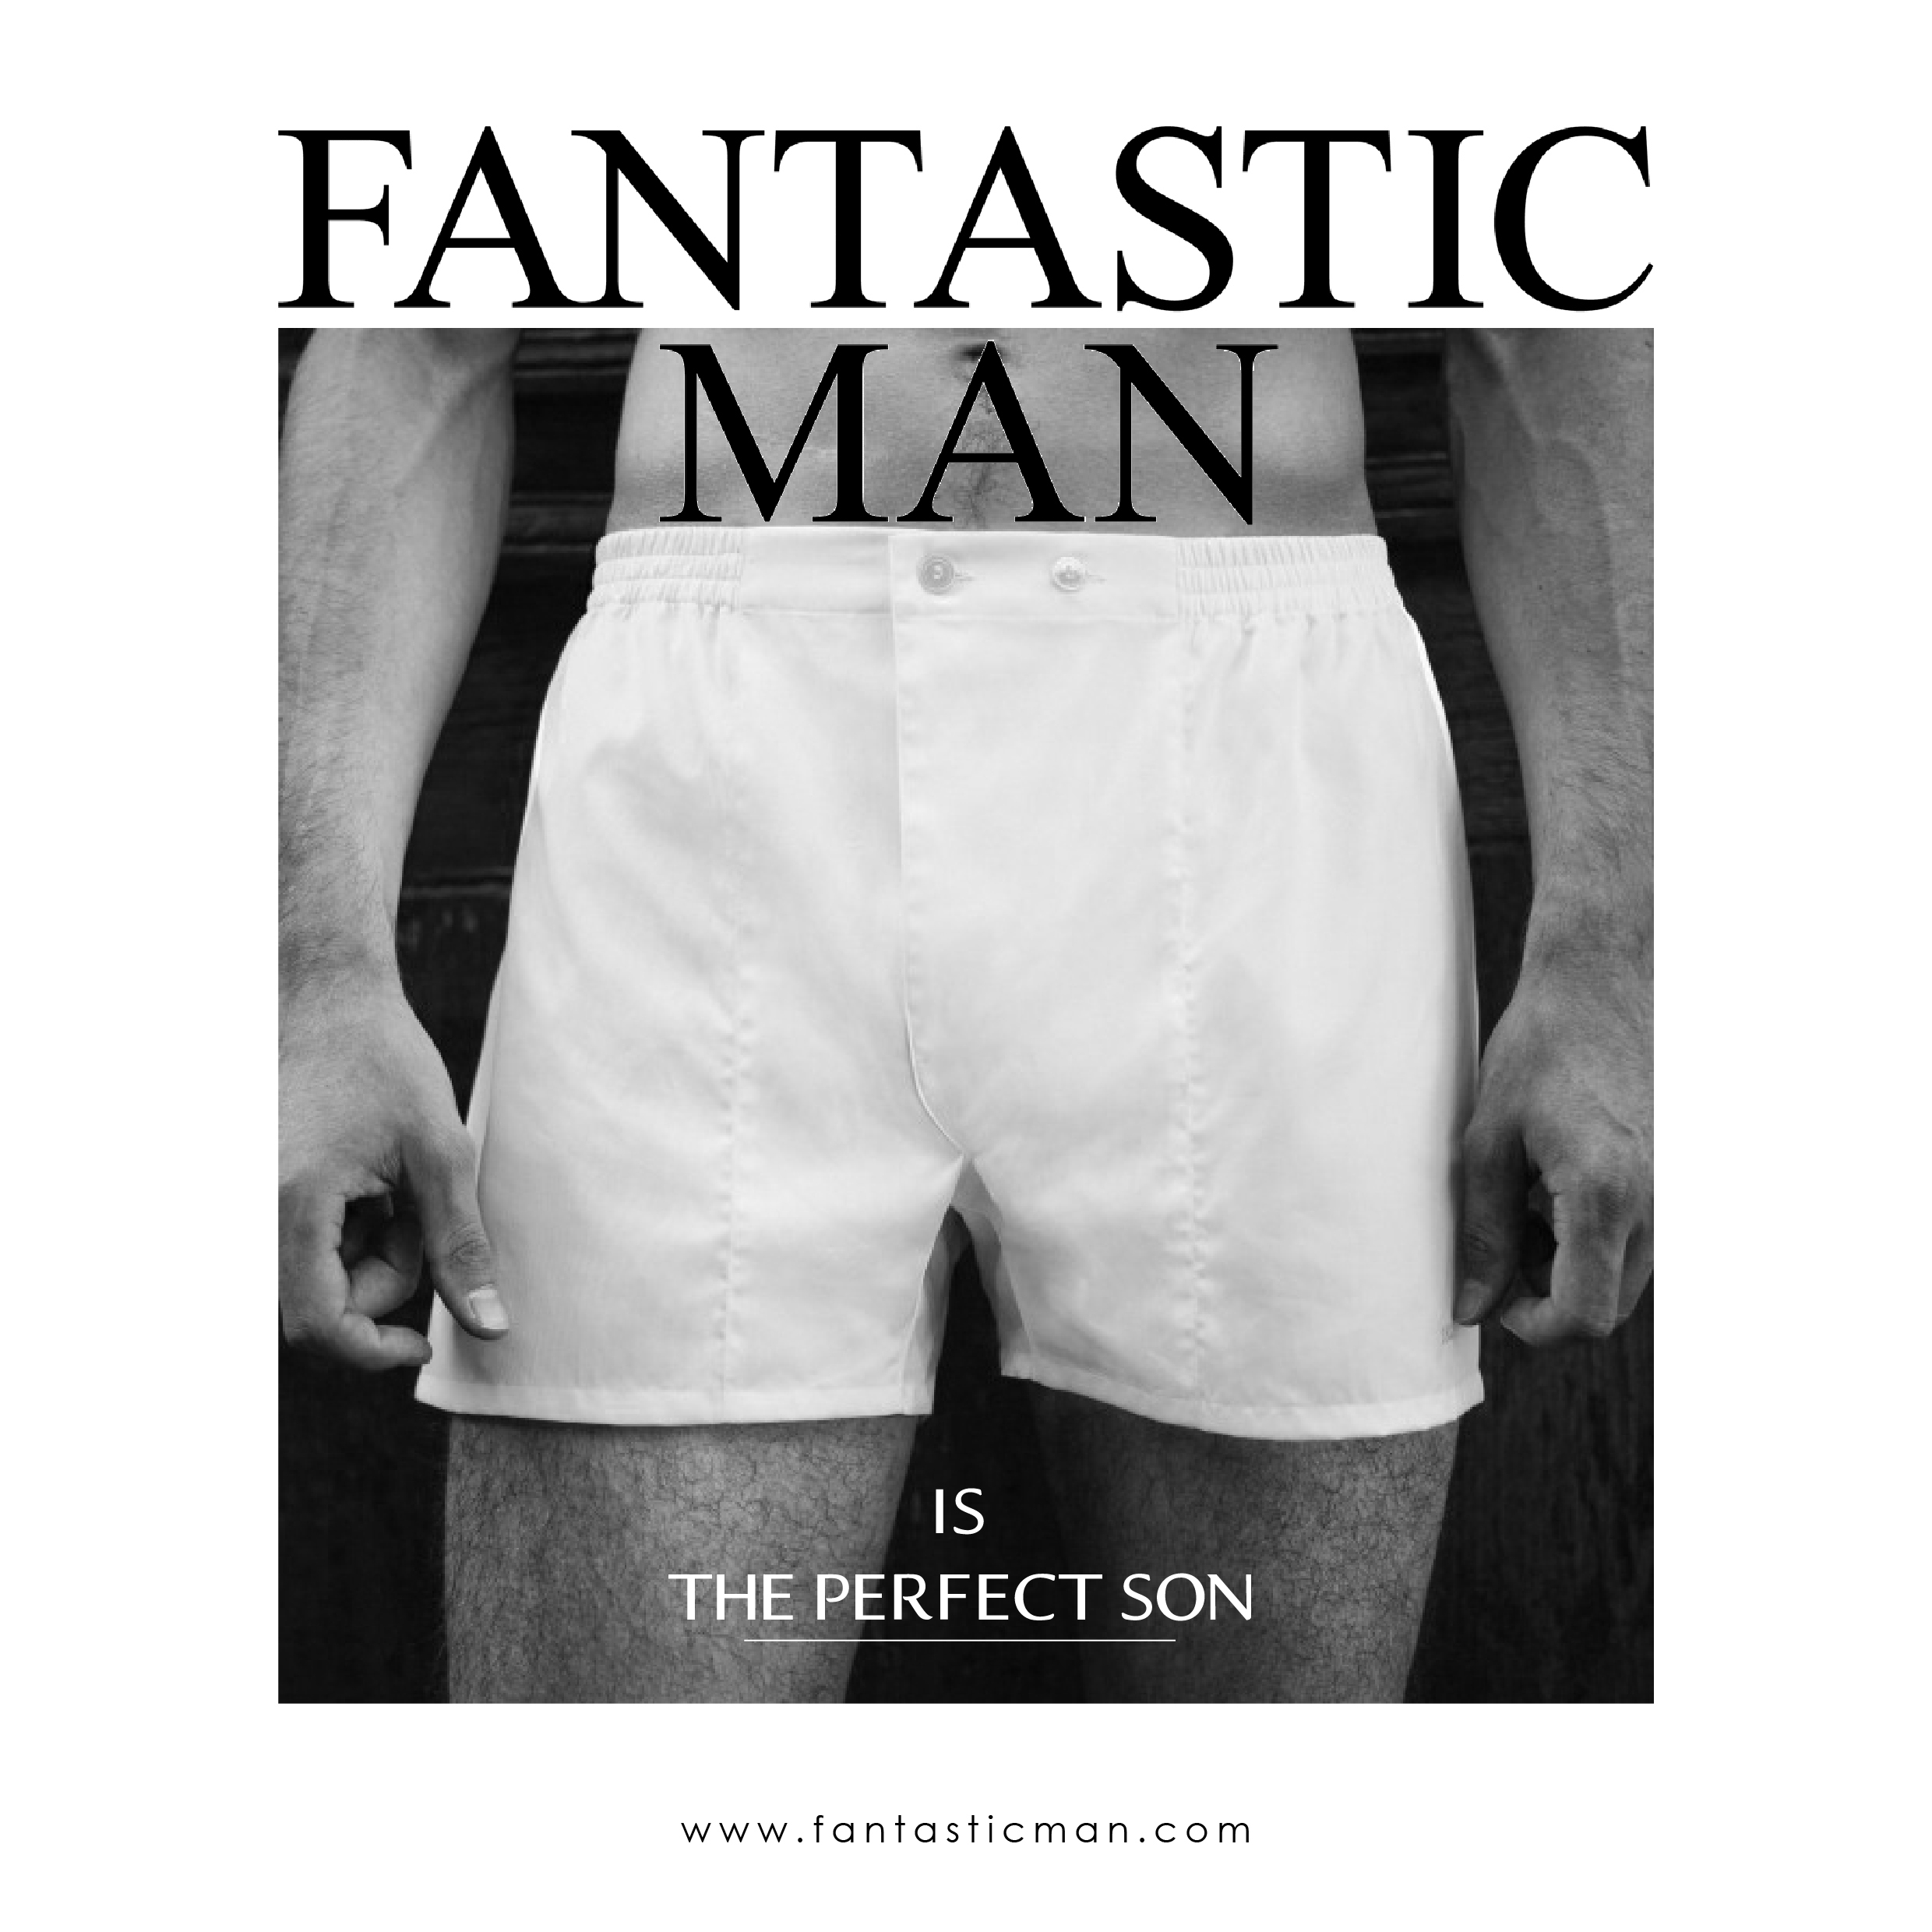 fantastic man magazine is the perfect son